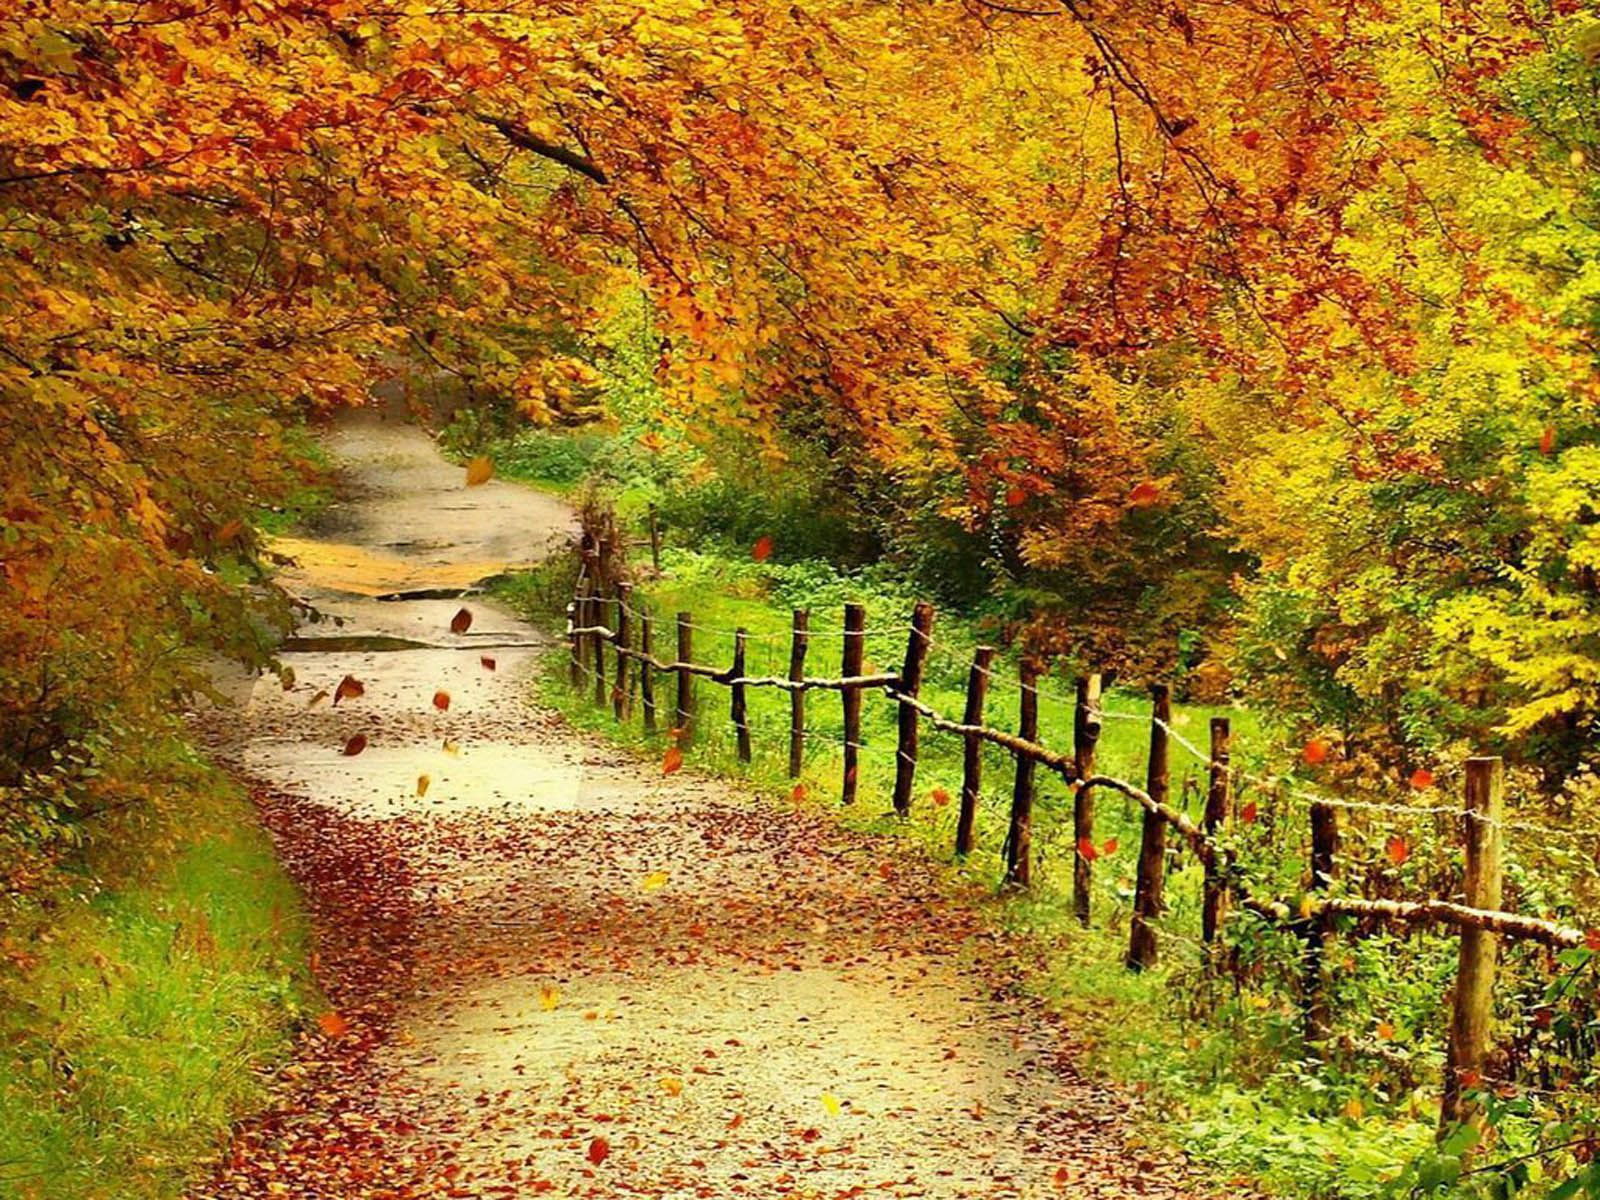 Wallpapers Autumn Scenery Autumn Landscape Scenery Pictures